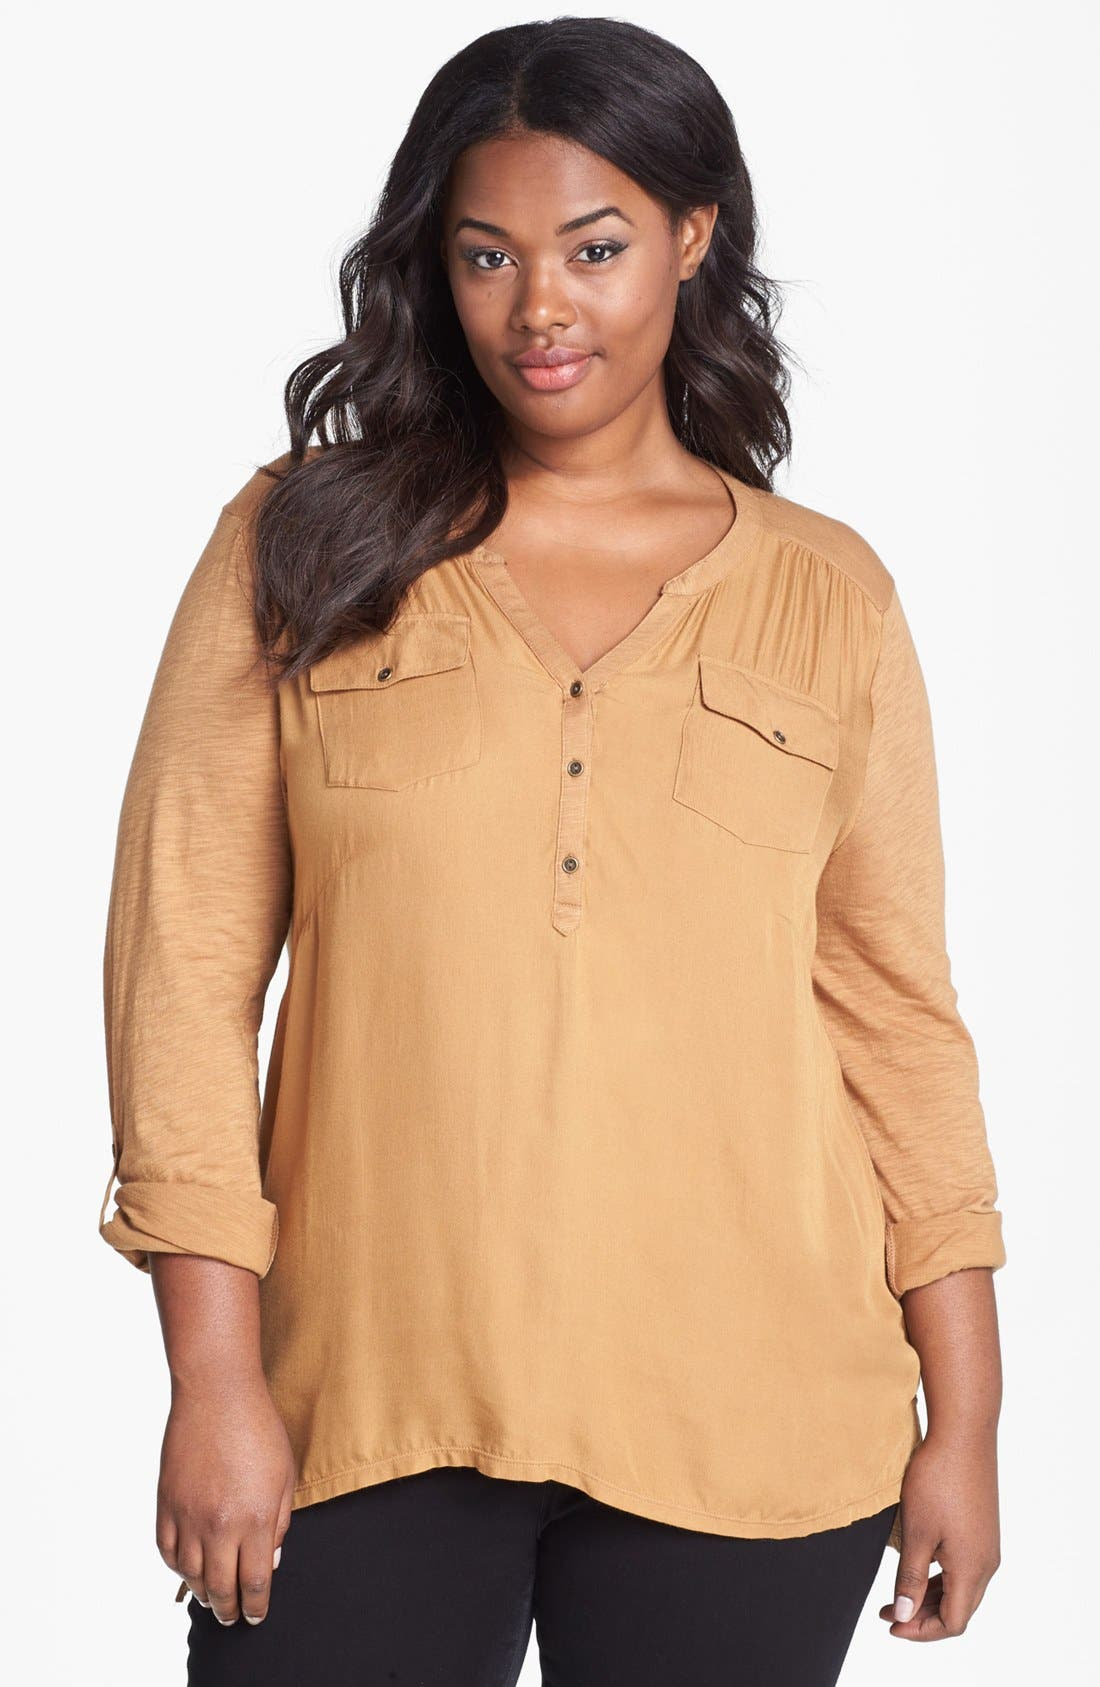 Alternate Image 1 Selected - Lucky Brand Woven Front Jersey Top (Plus Size)